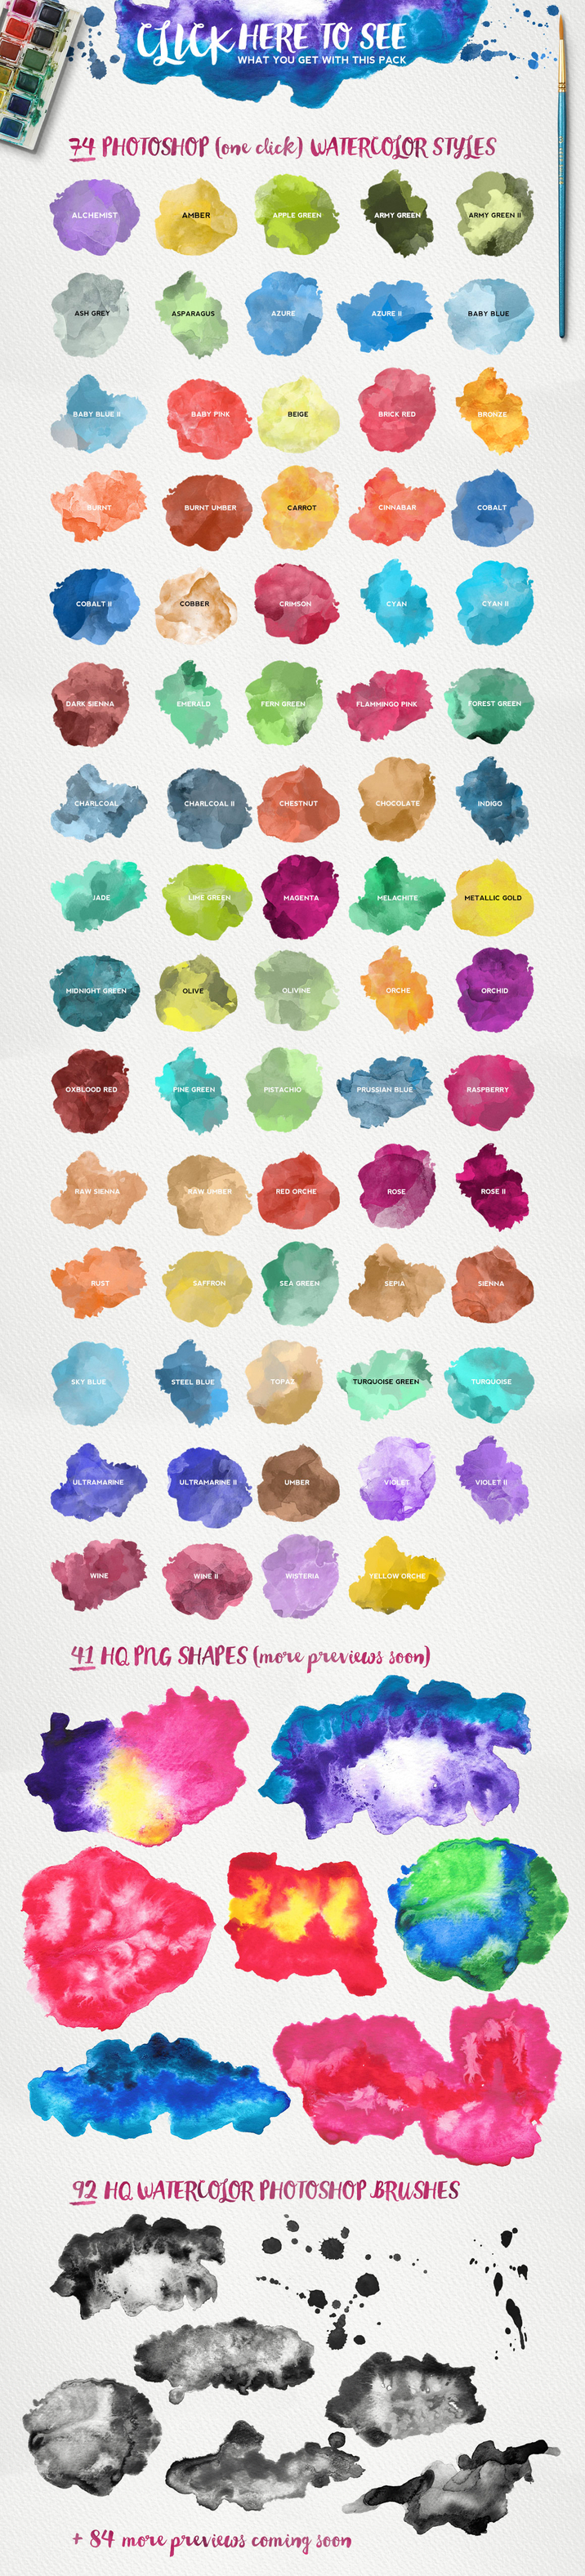 Creativemarket_Watercolor_Ultimate_Designer_KIT_223071_cap05